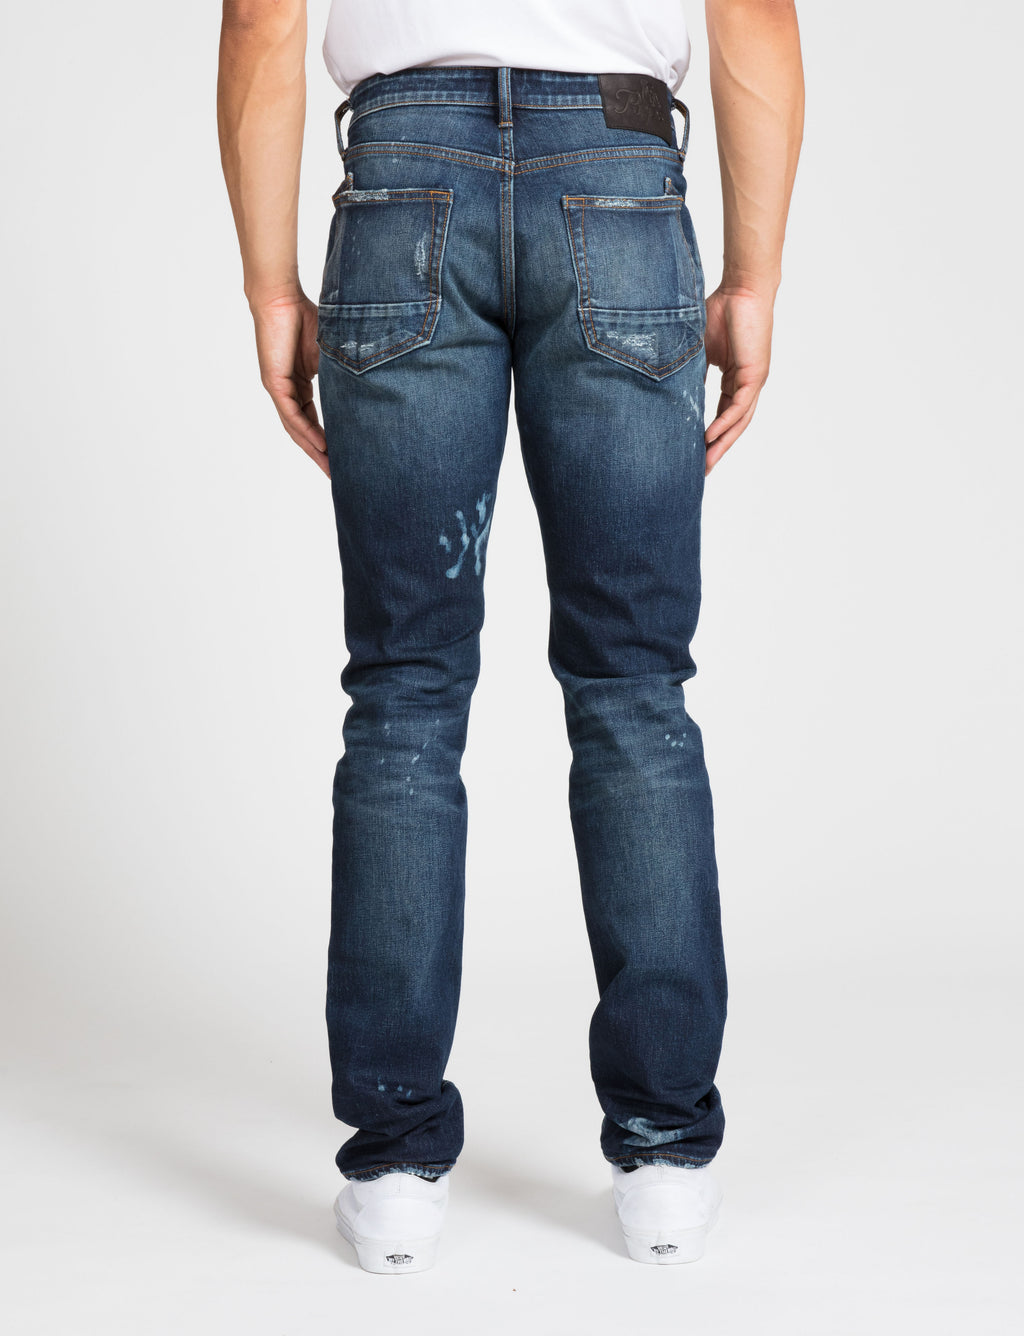 Prps - Le Sabre Stretch - Bellflower - Jeans - Prps